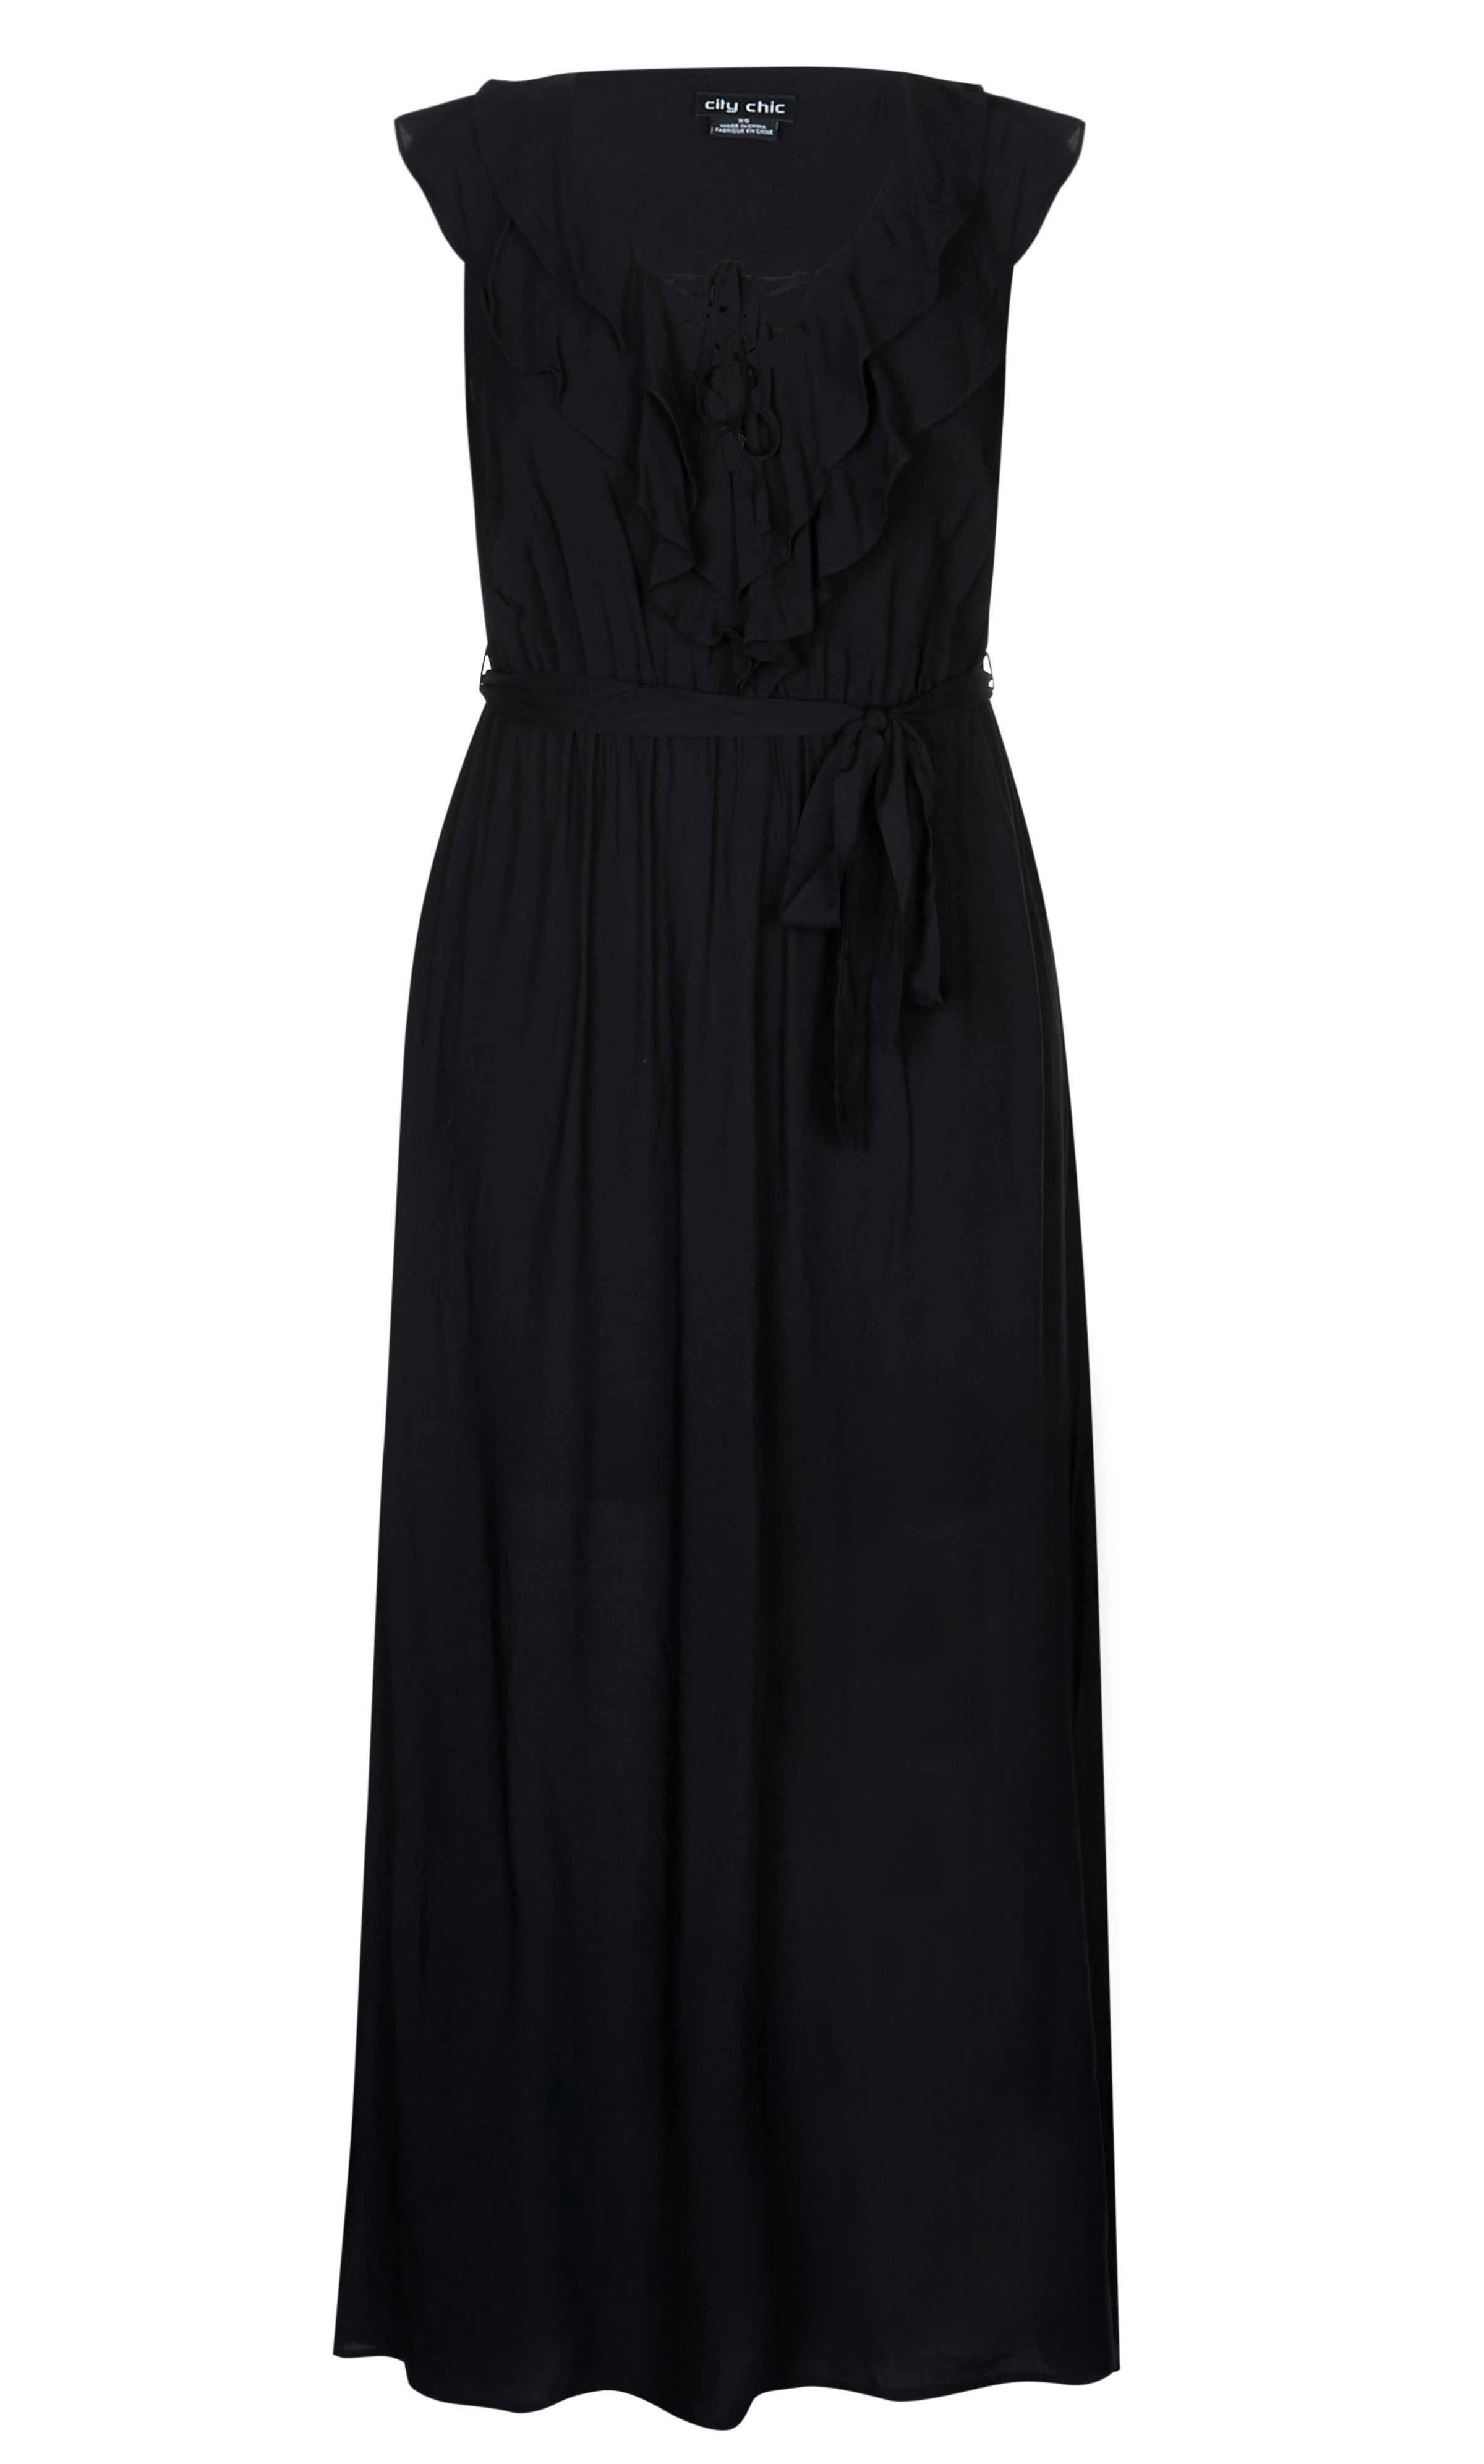 City chic sweet ruffle maxi dress womenus plus size fashion